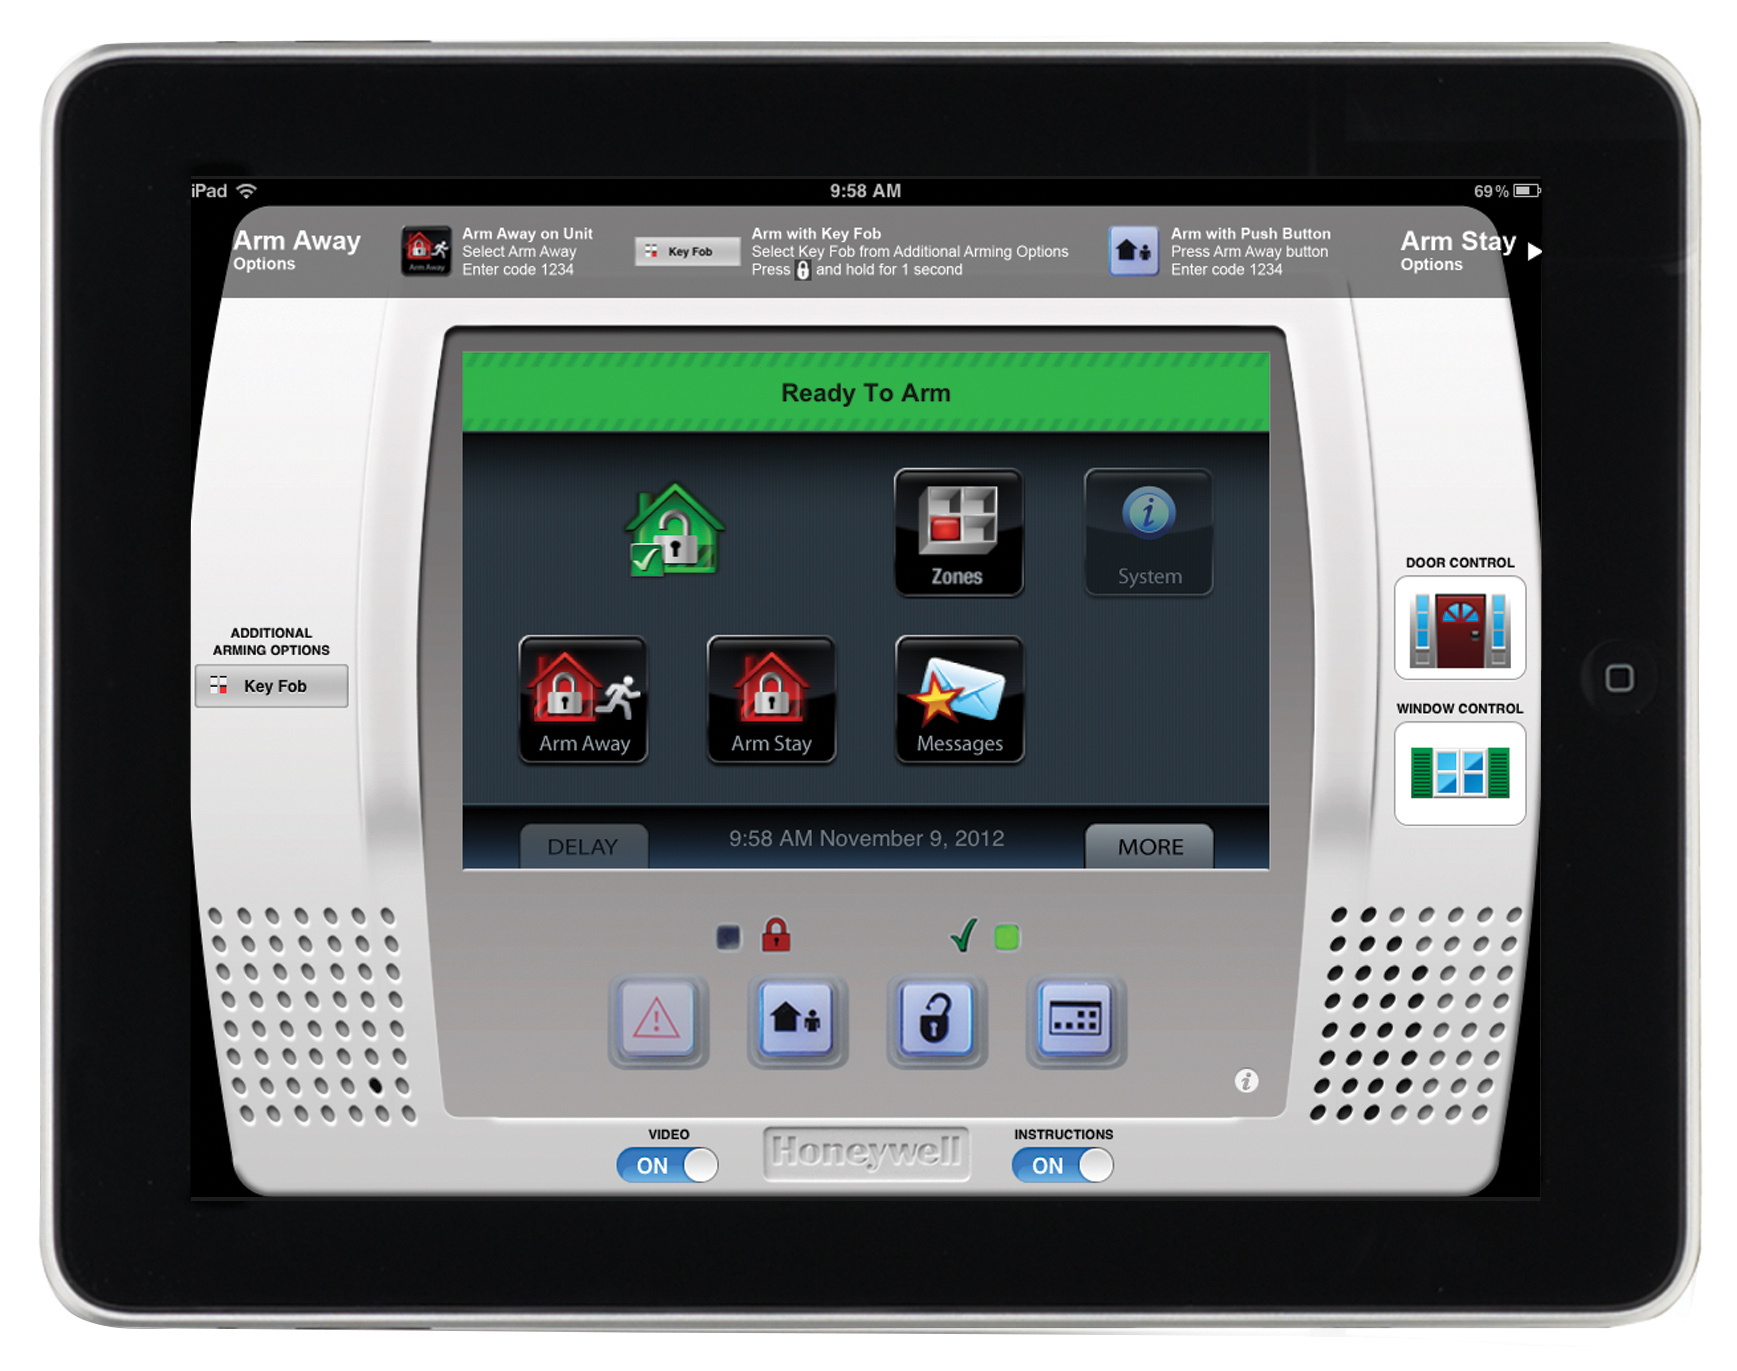 honeywell s enhanced lynx touch demo app for ipad now available on rh retailitinsights com ademco lynx 5100 installation manual ademco lynx 5100 installation manual